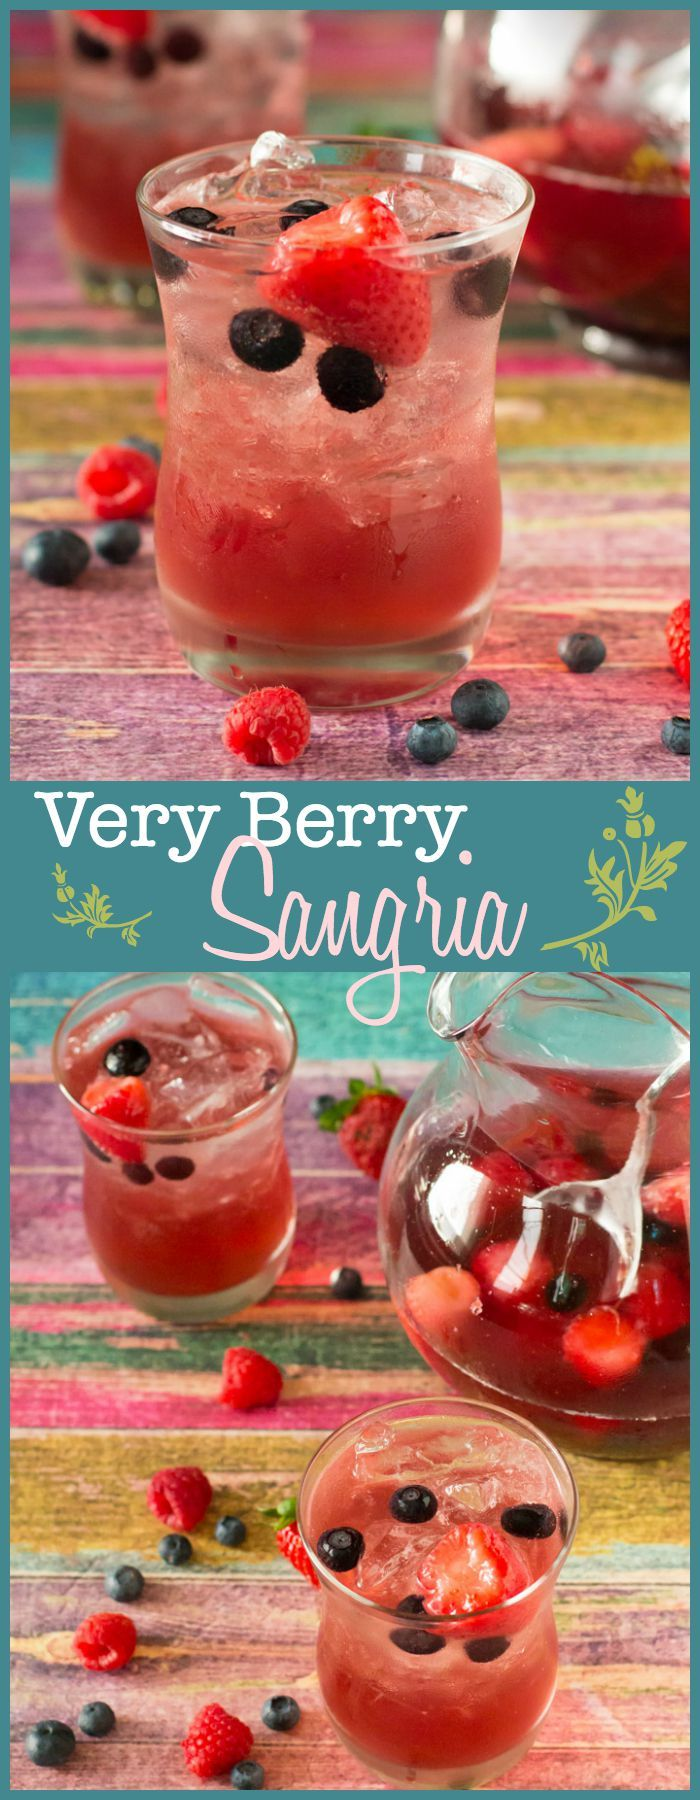 Bursting with strawberry, blueberry, and raspberry flavor, this super easy sangria is just the thing to relax with!